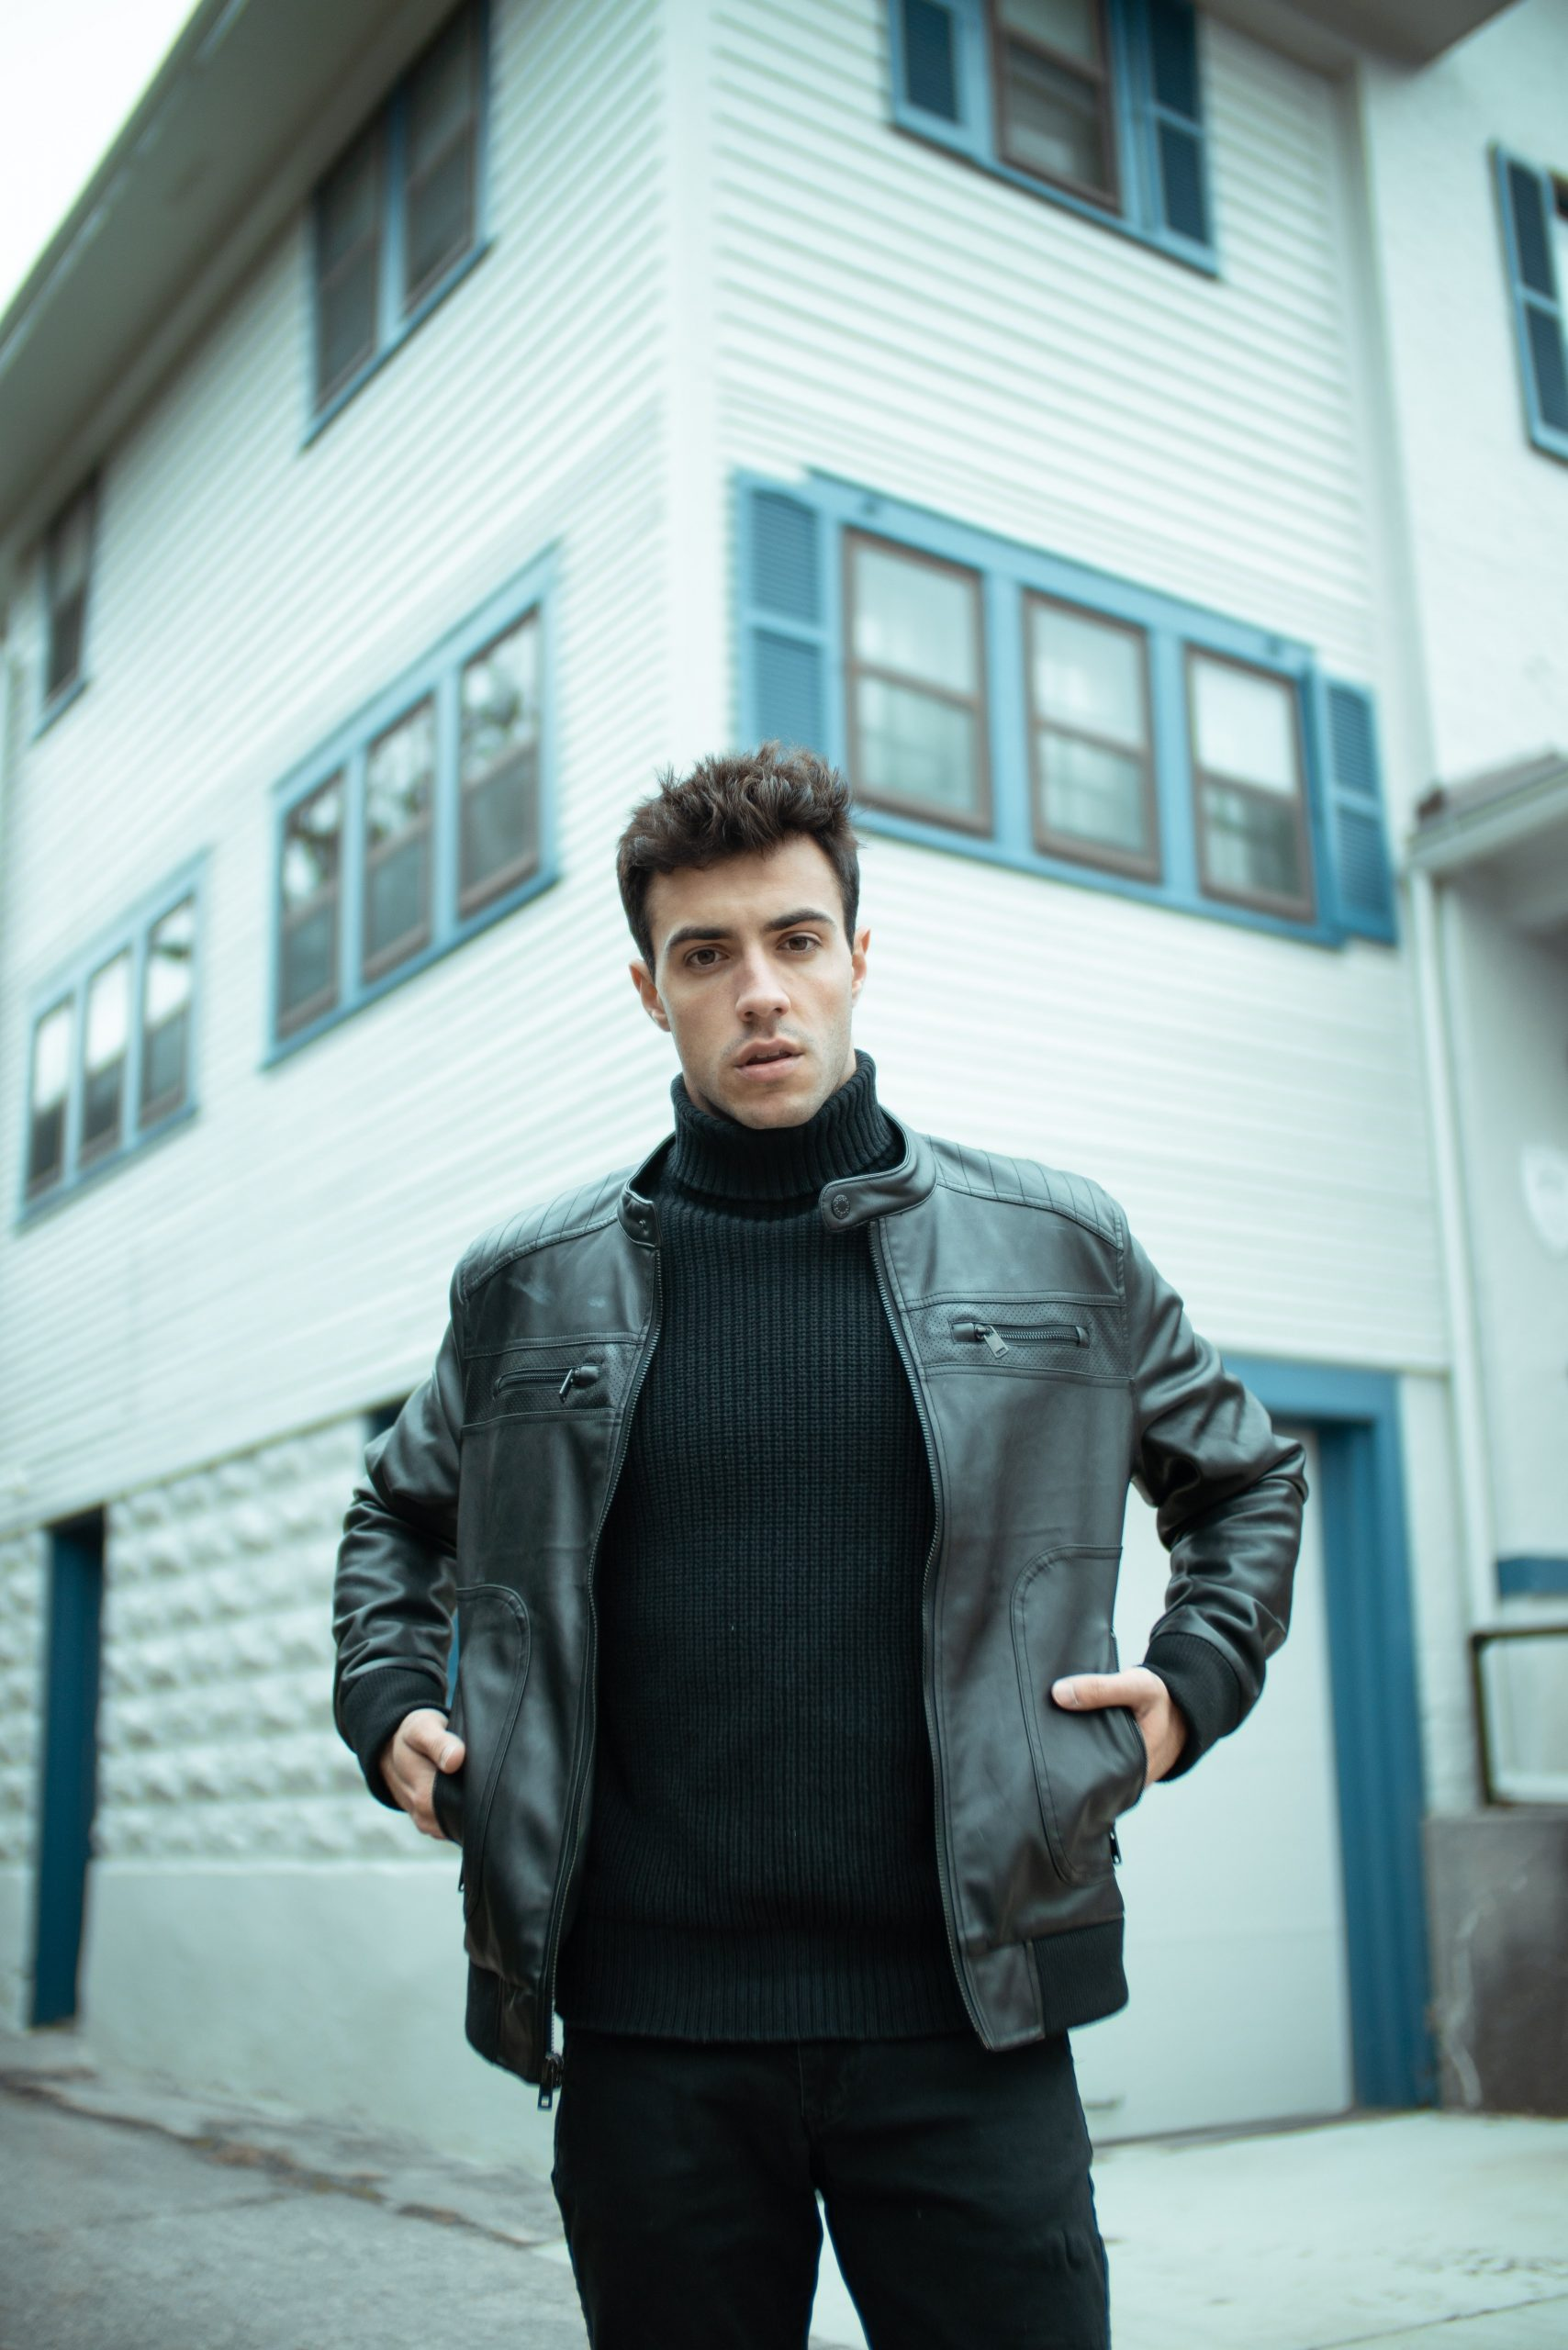 man standing in front of a building wearing a black turtleneck and black leather jacket